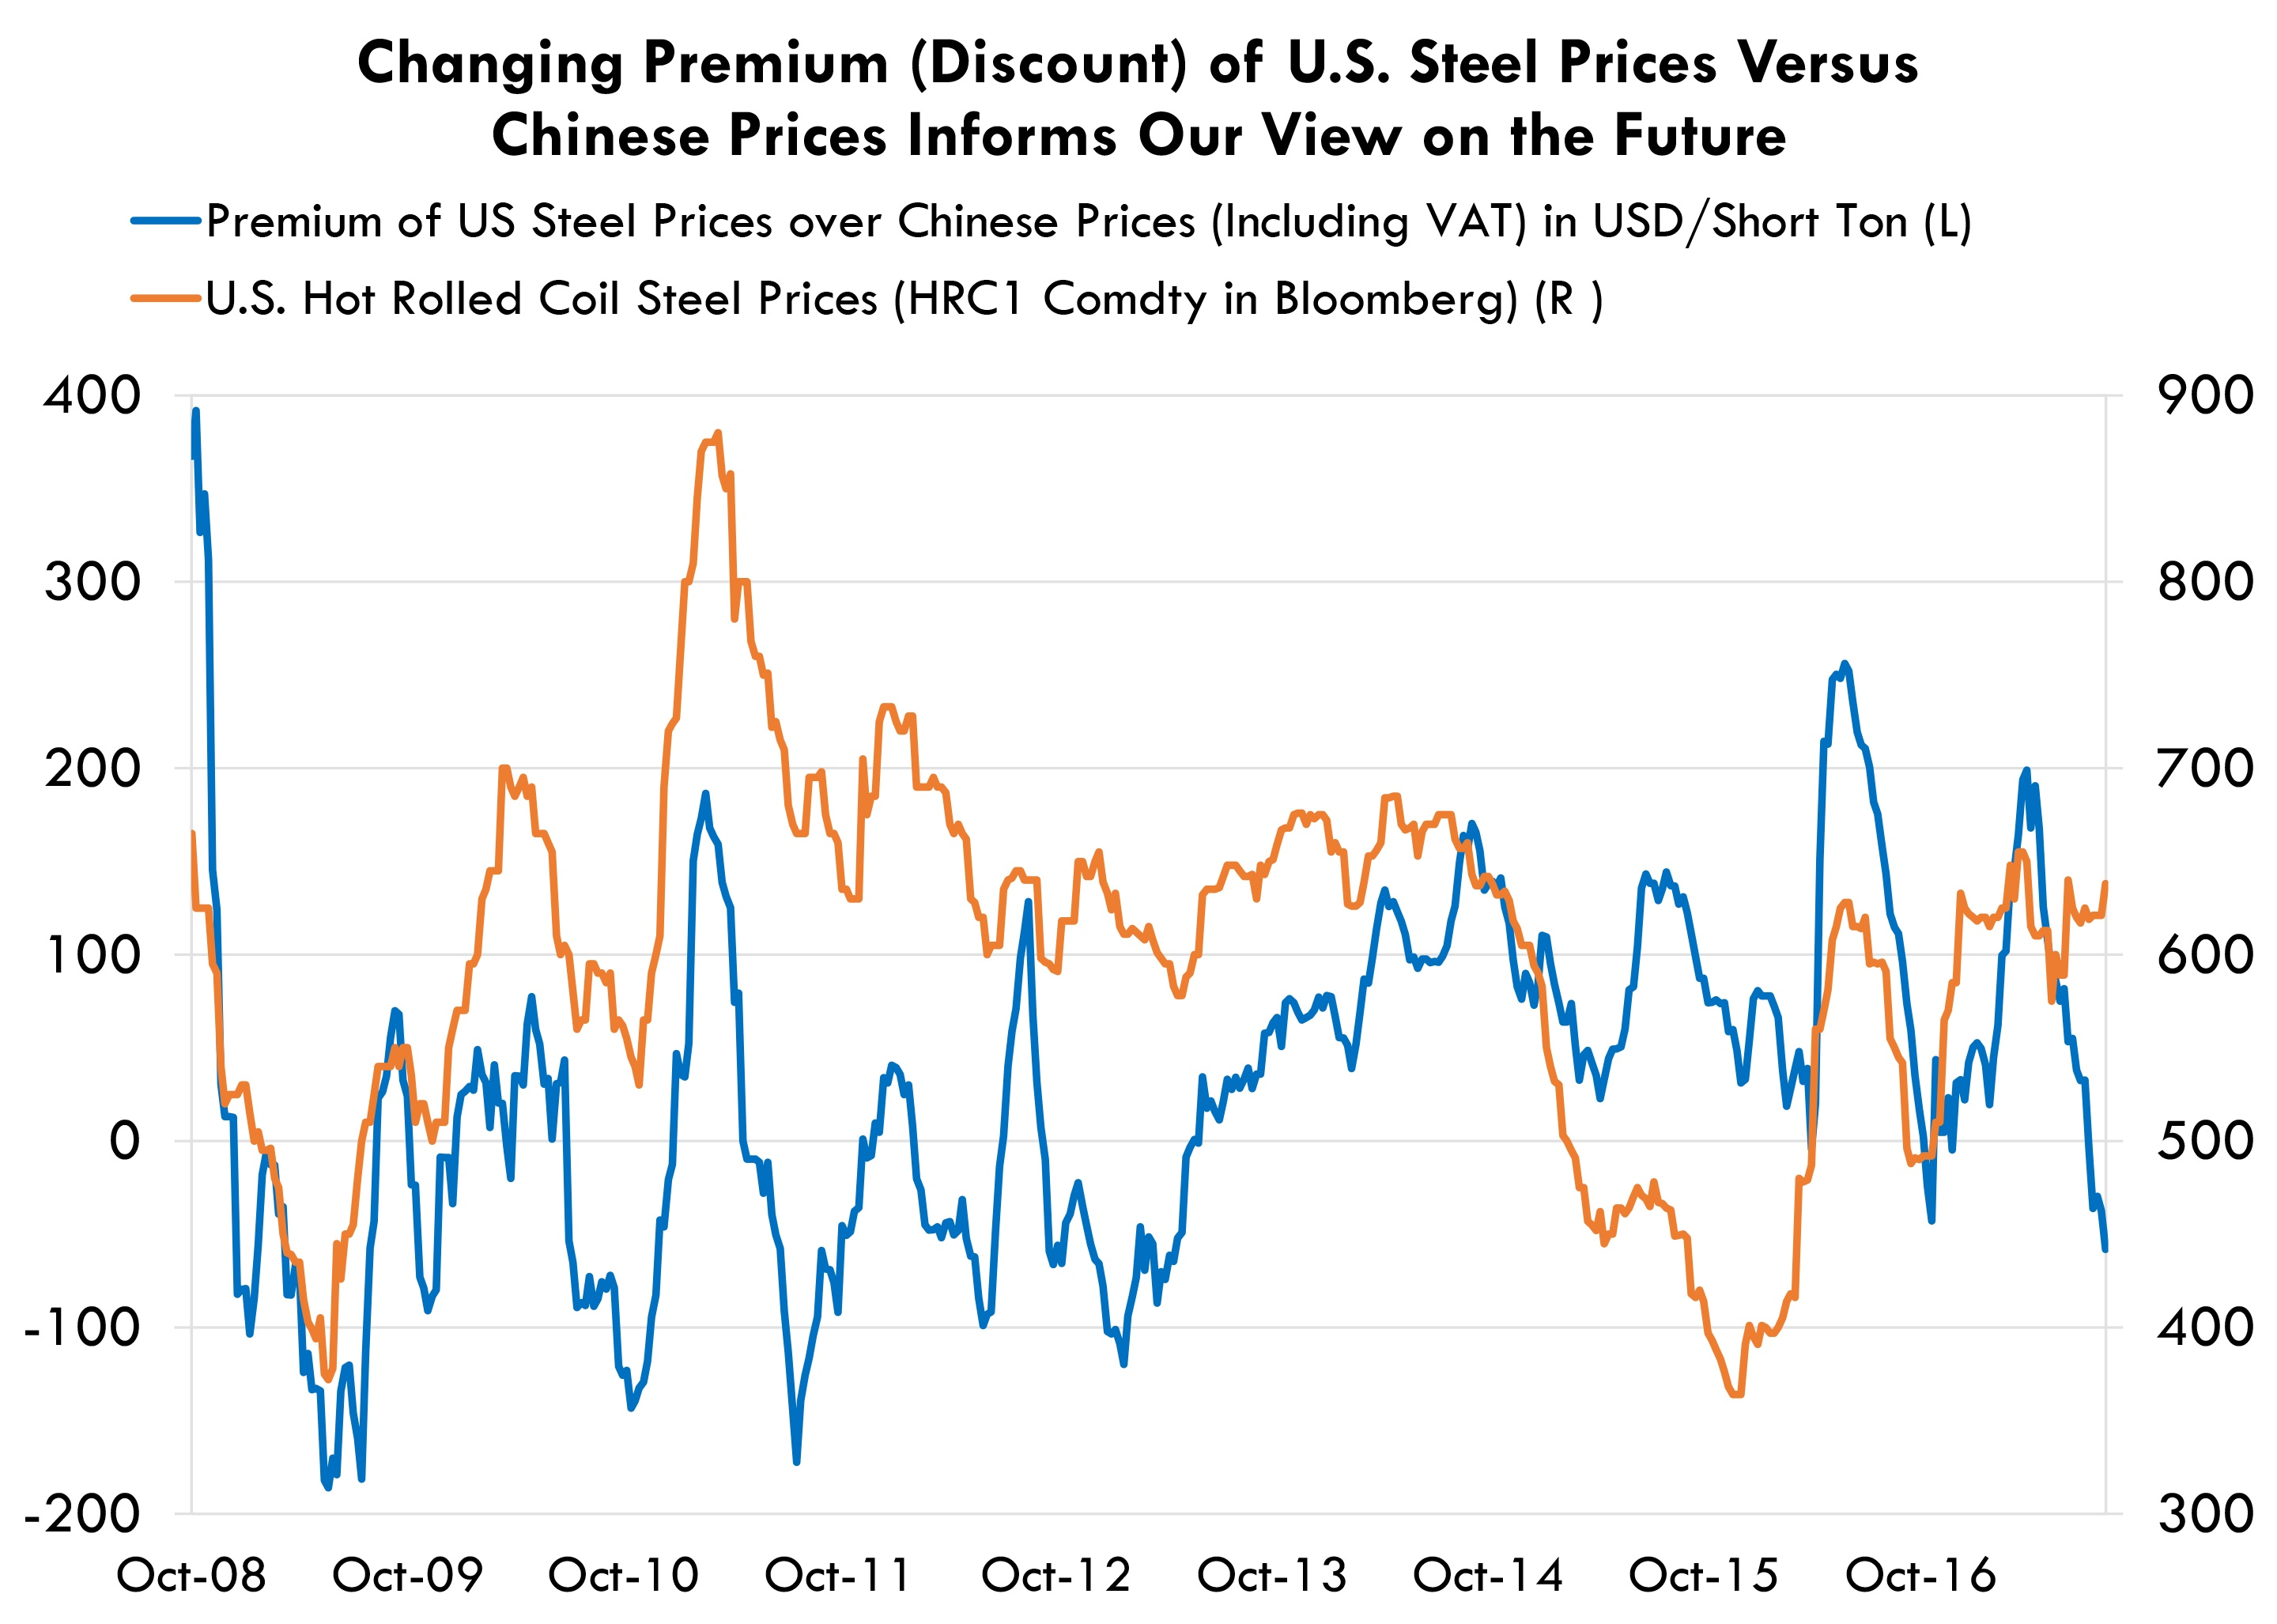 Changing Premium of U.S. Steel Prices Versus Chinese Prices Informs Our View on the Future